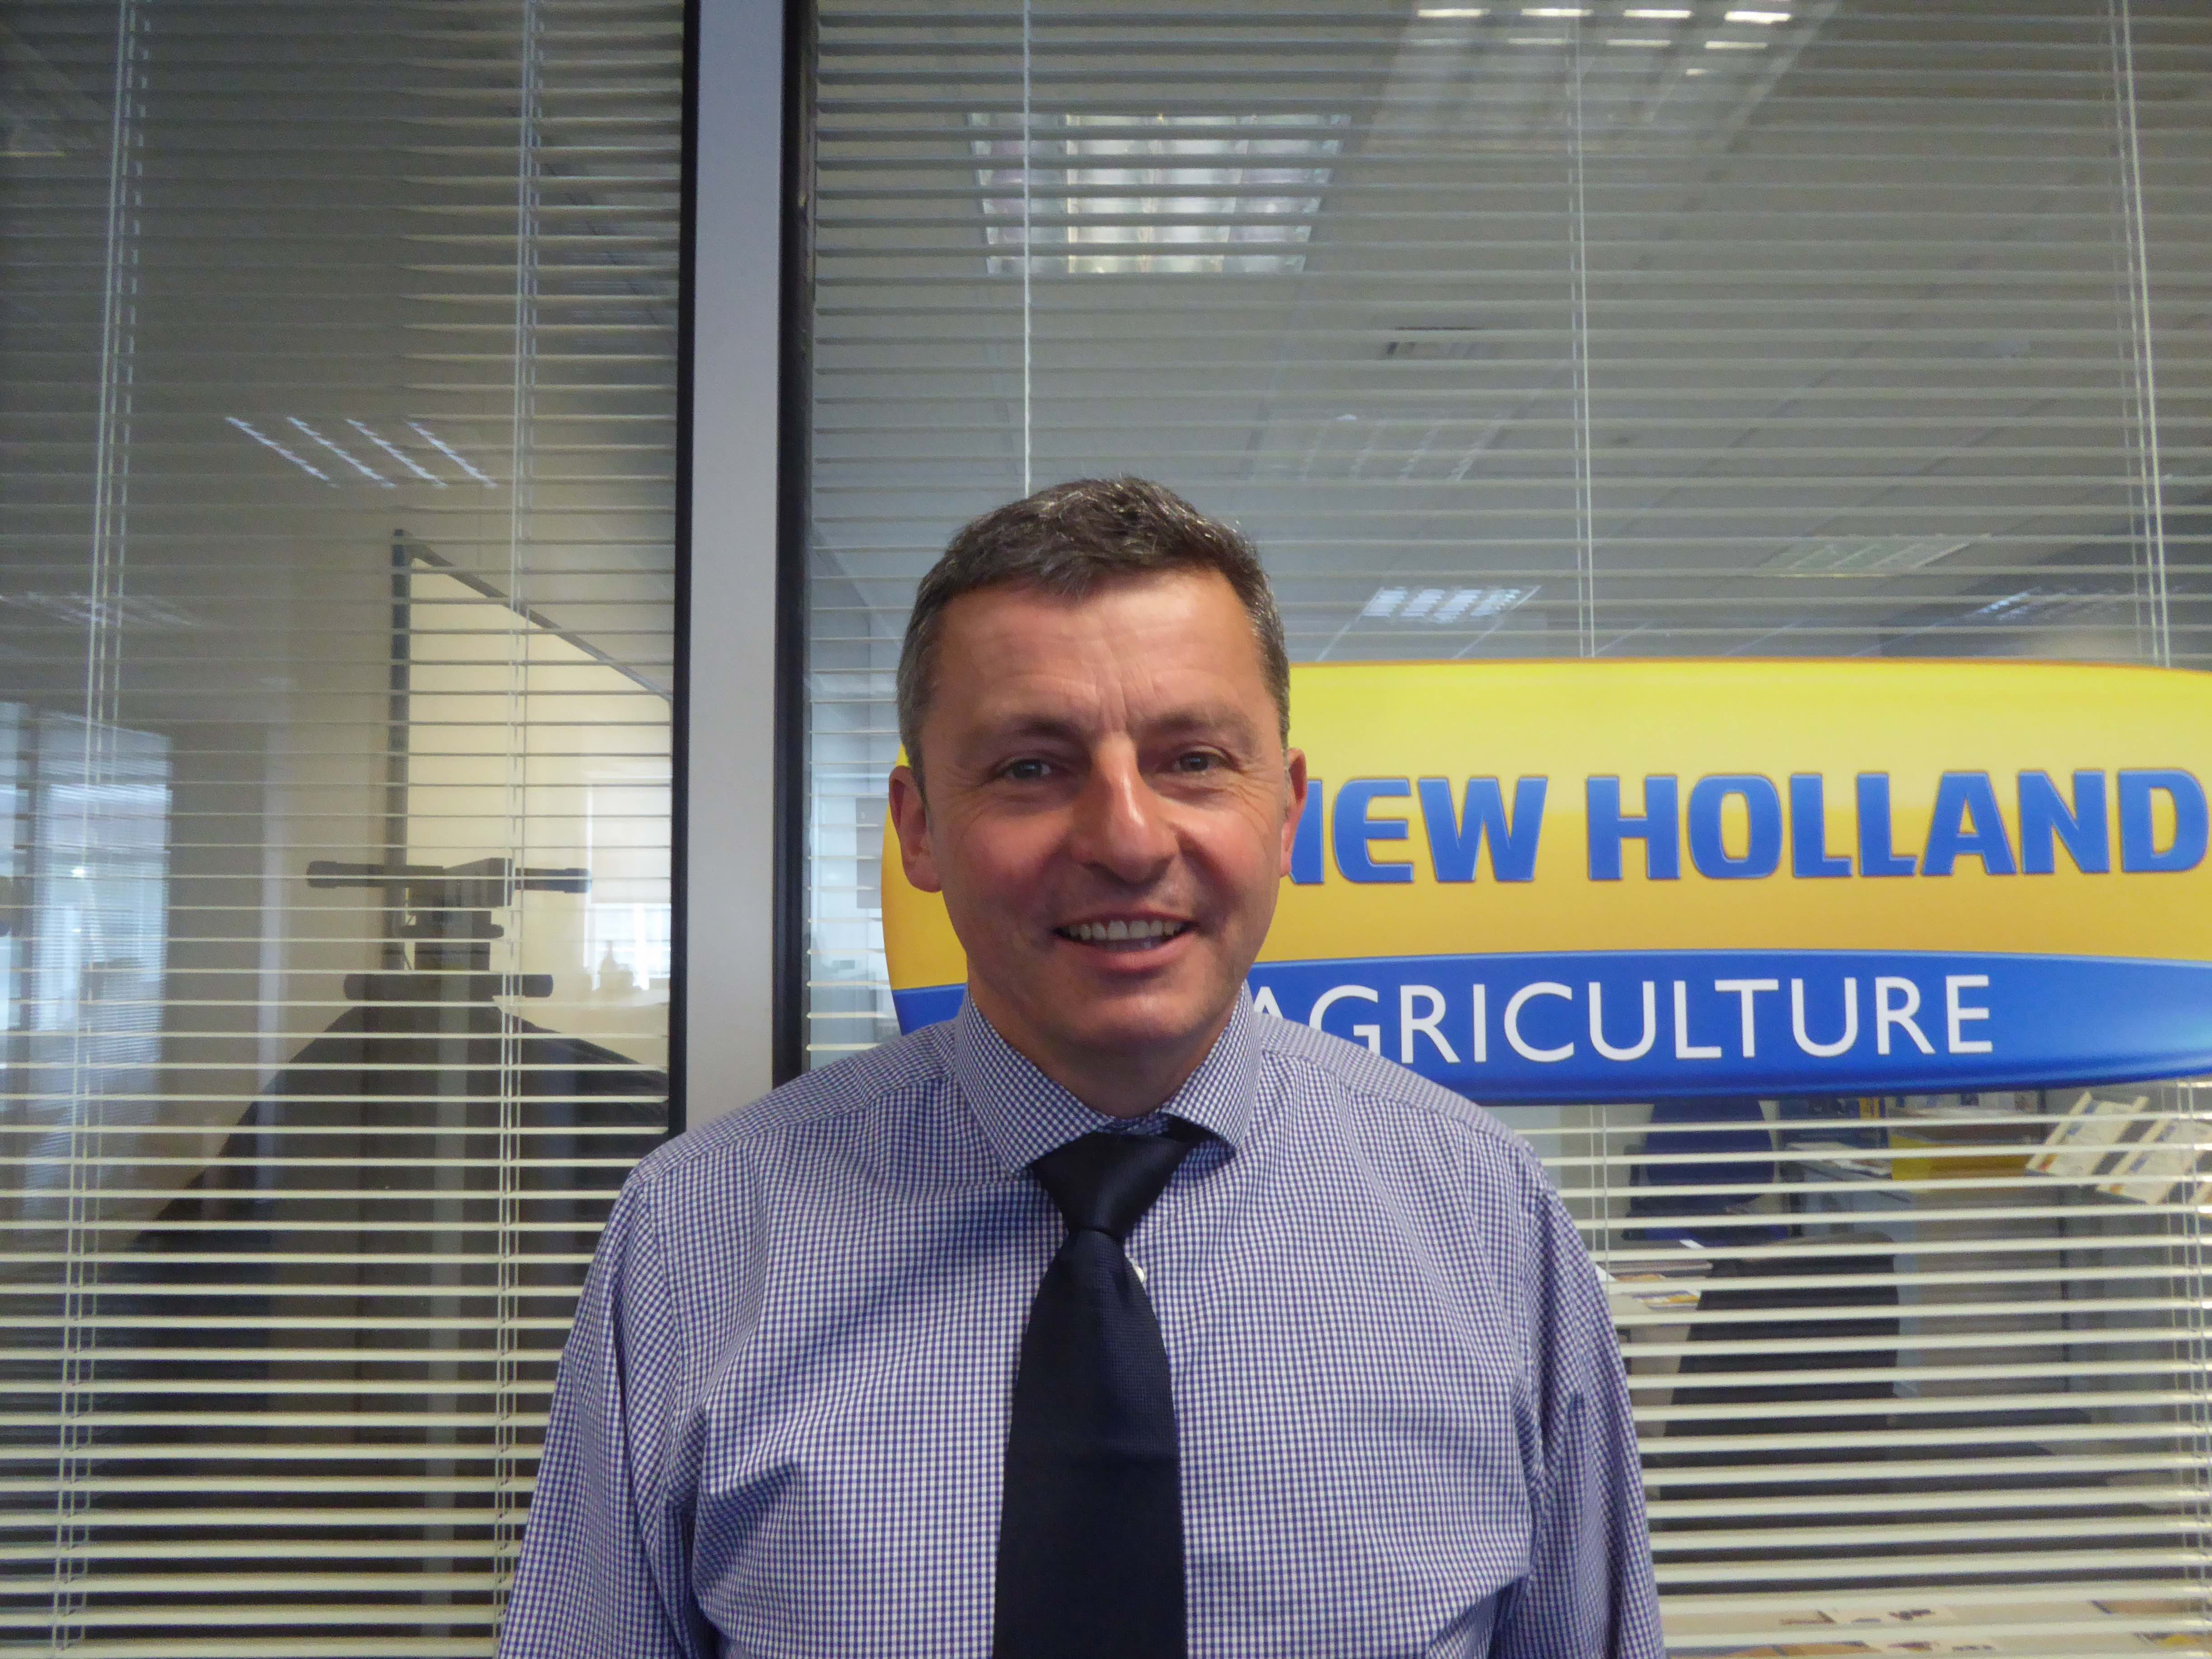 NEW HOLLAND APPOINT BUSINESS DIRECTOR UK & ROI